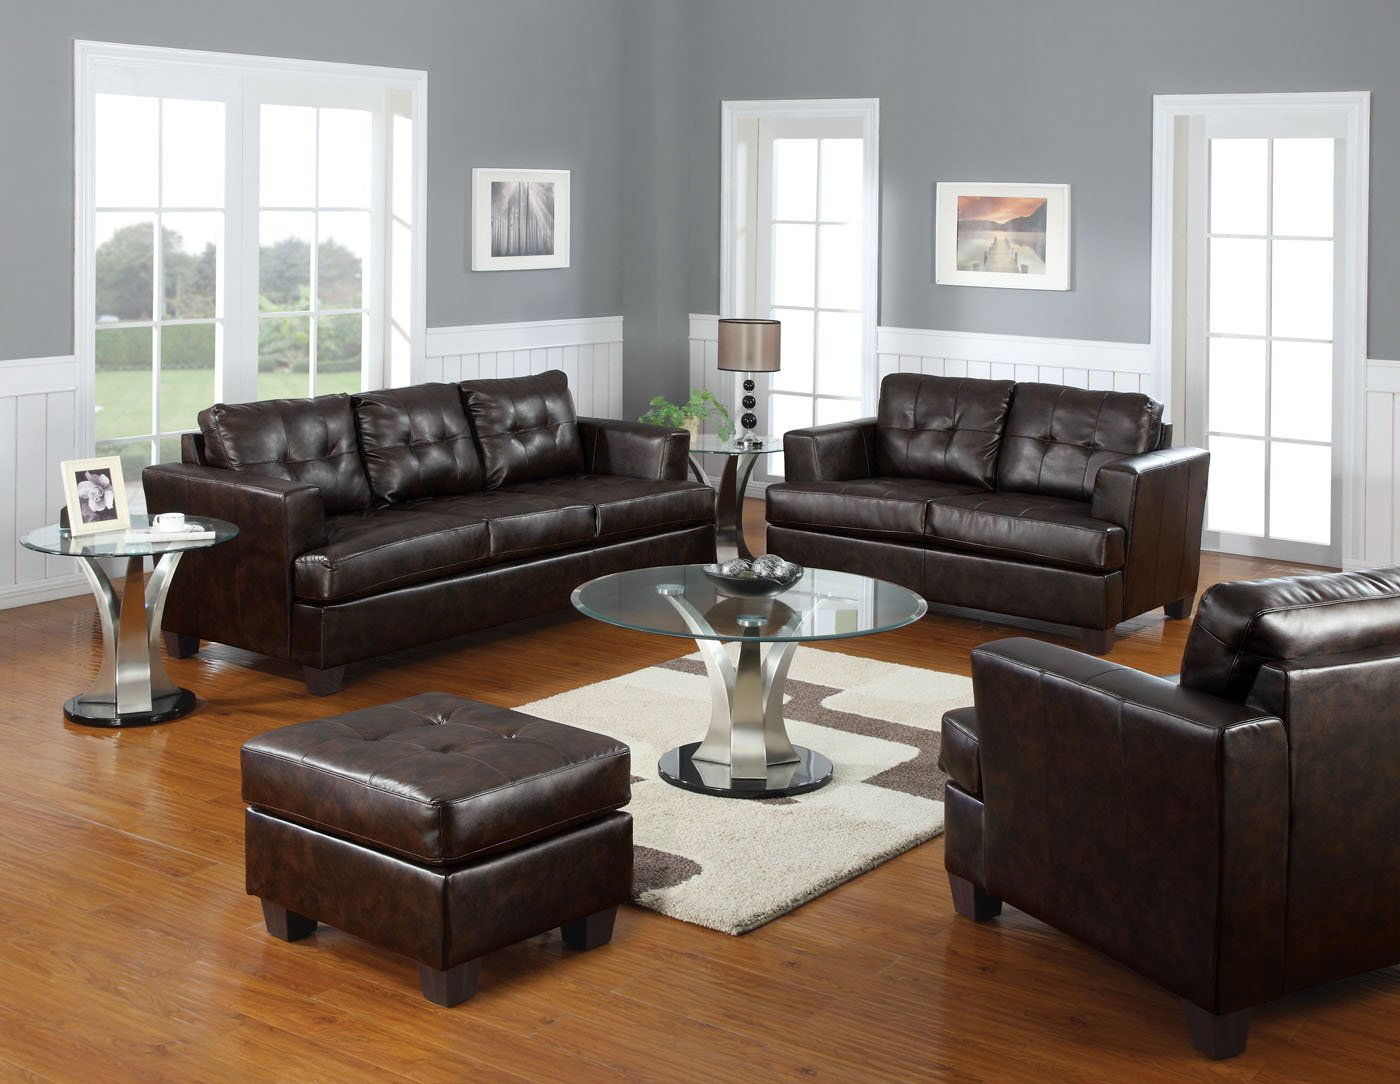 Acme 15071B Diamond Bonded Leather Loveseat with Wood Leg - Brown